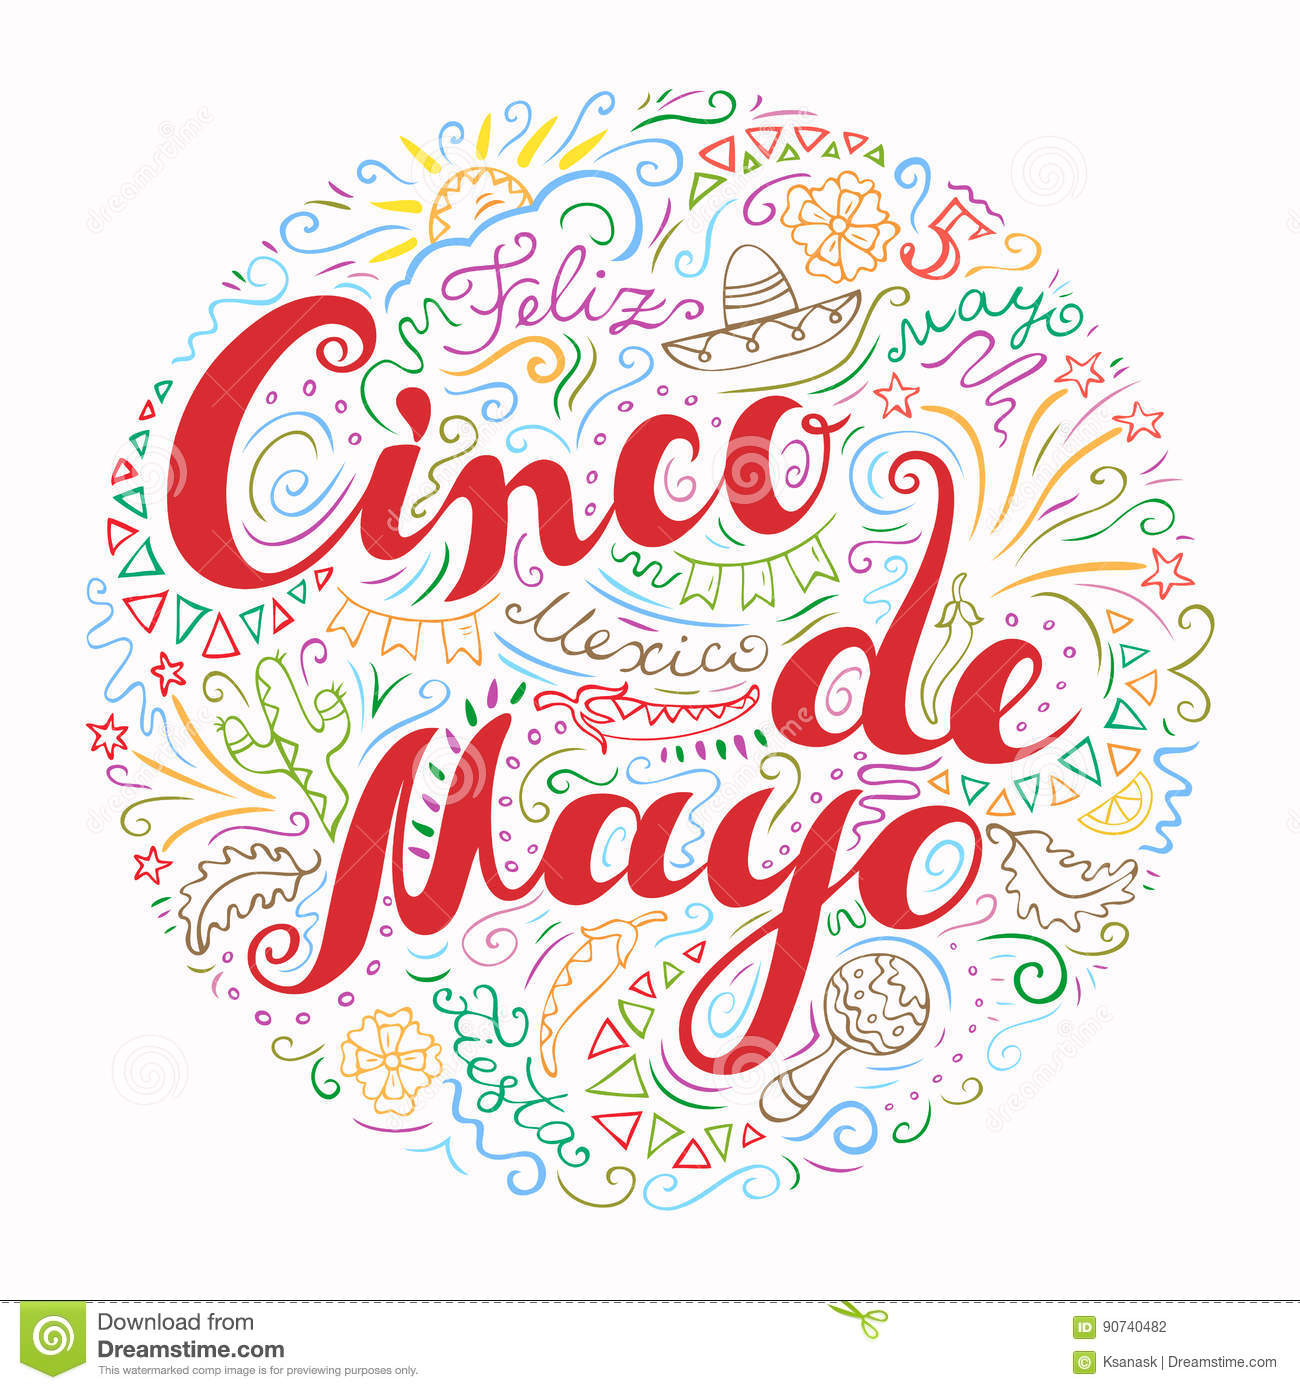 Cinco De Mayo Card With Doodle Style Handwritten Greeting With Many